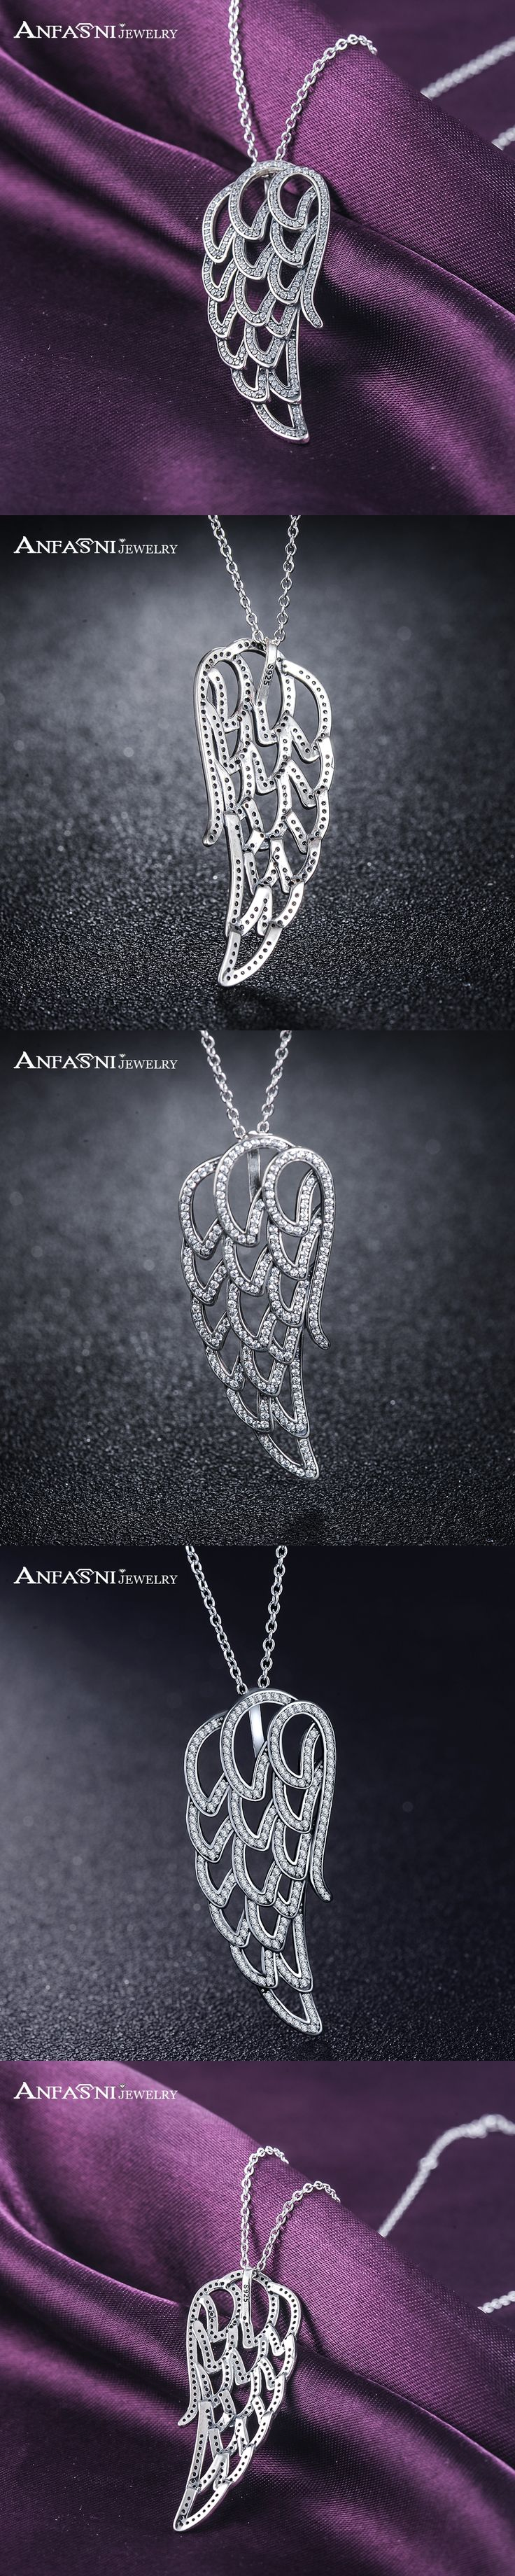 ANFASNI 49% Off High Quality 925 Sterling Silver Angel Wing Necklaces for Women With Clear CZ Jewelry Collares PSNL0016-B